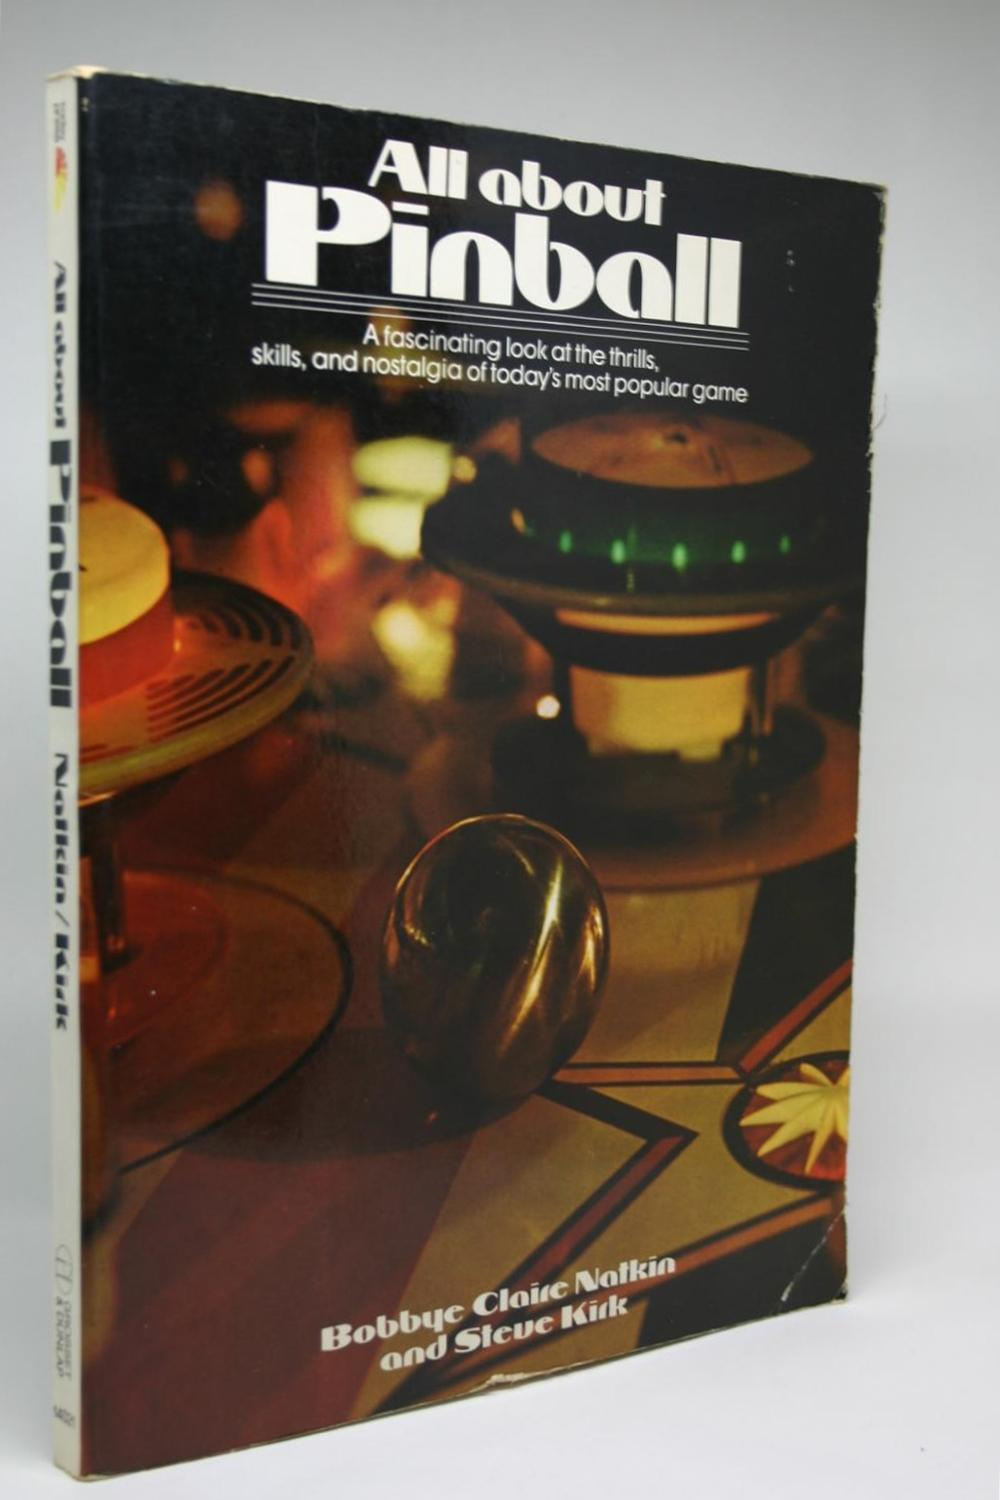 All About Pinball. Natkin, Bobbye Claire; Kirk, Steve Good Softcover